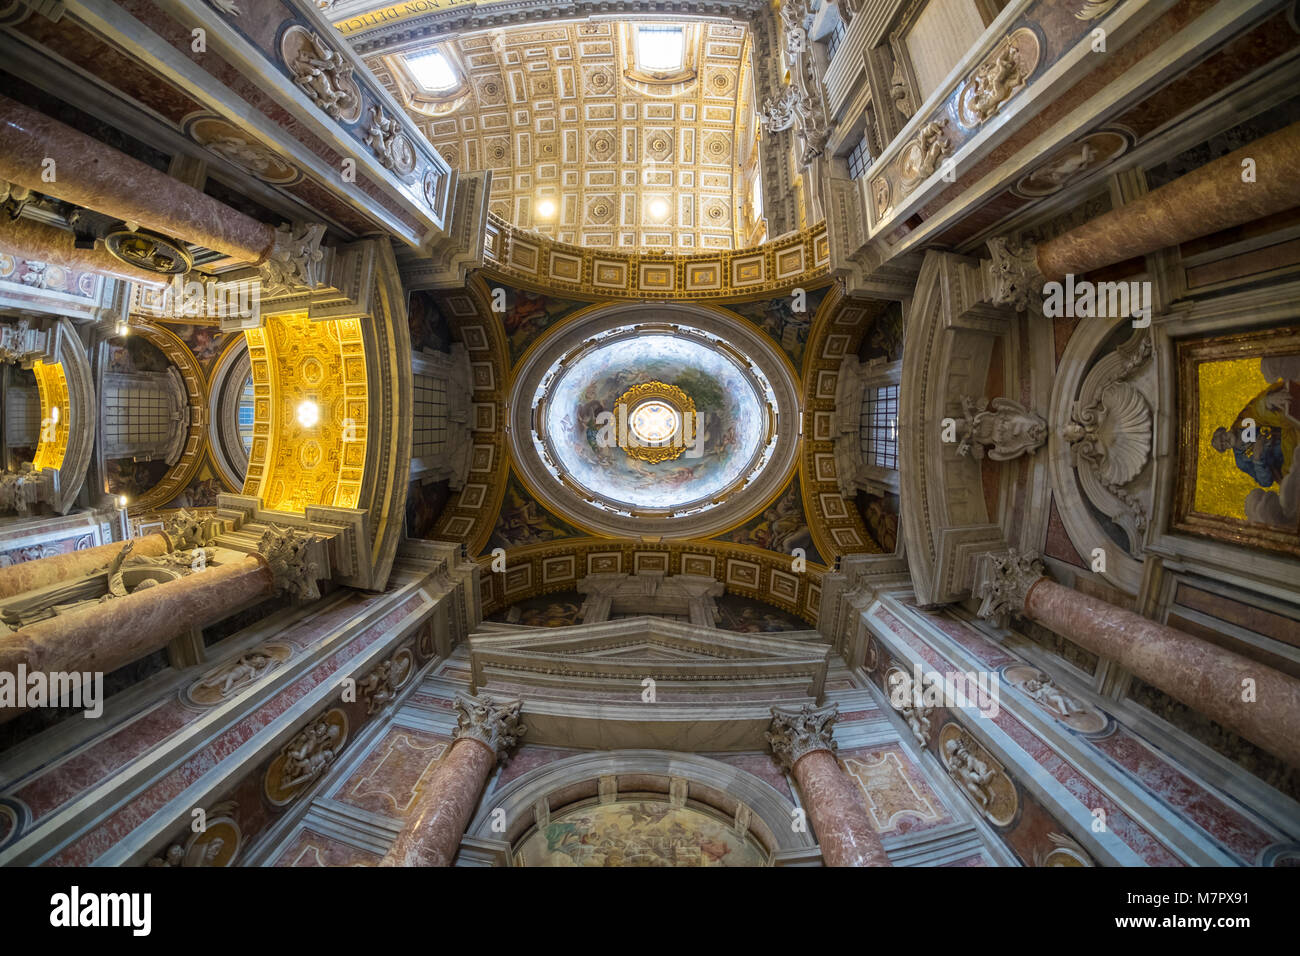 The ceiling of Saint Peter Basilica in Vatican, Rome, wide angle lens view - Stock Image